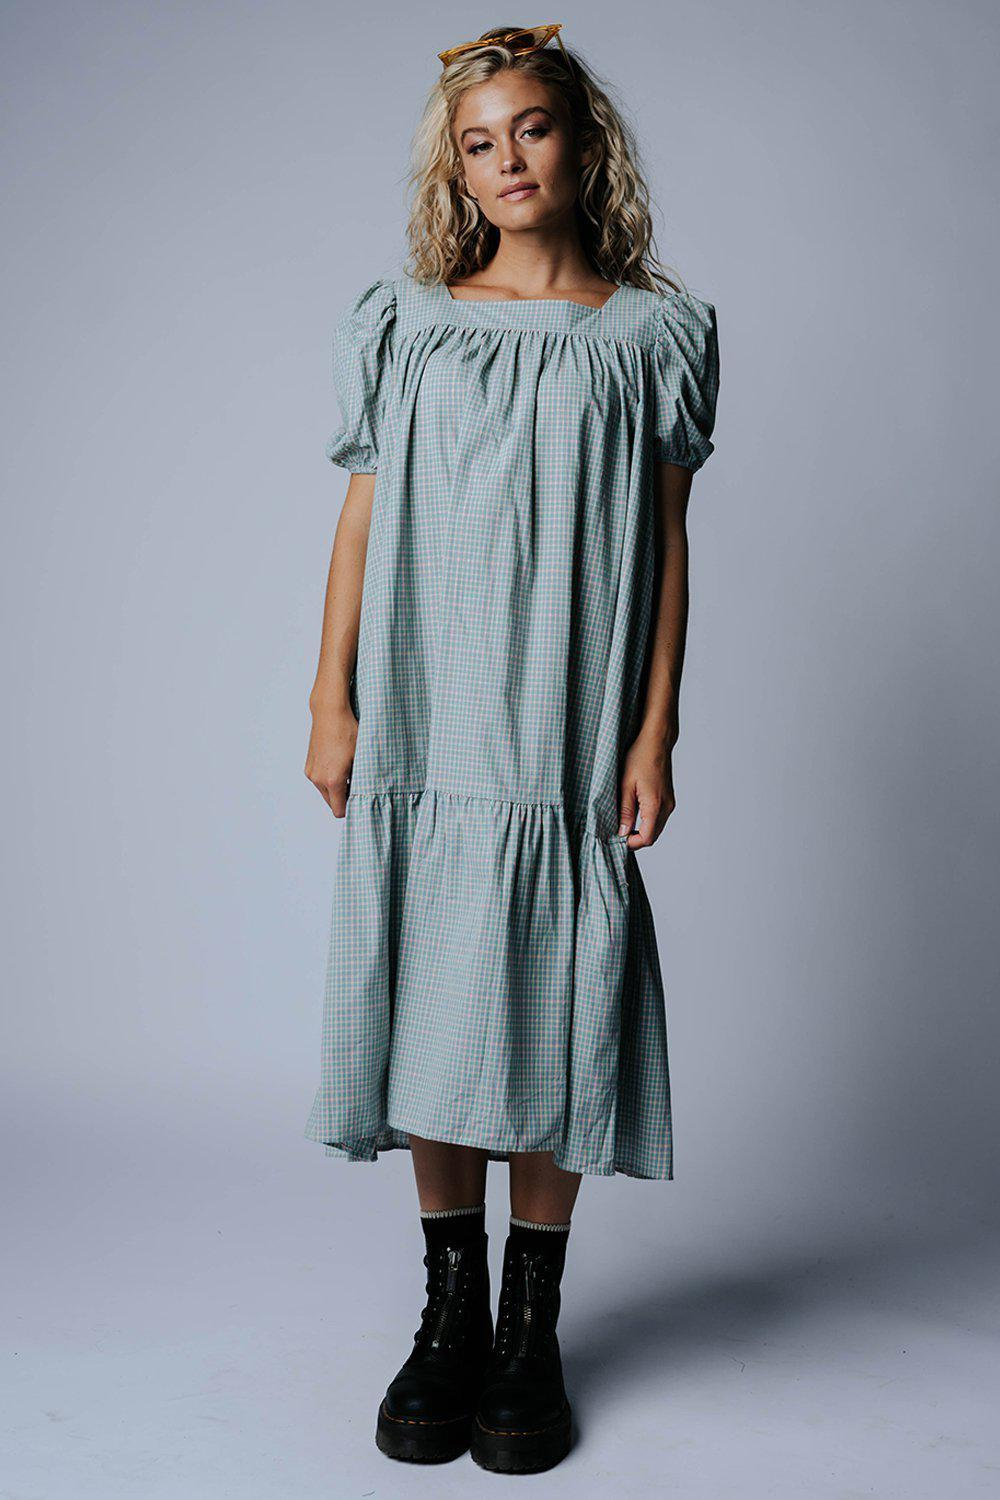 best_seller, Long Live Check Plaid Maxi Dress - FINAL SALE, Dress, women's clothing, dresses, skirts, coats, jackets, shoes, boots, tops, tee shirts, jeans, free people, levi's, rollas, jumpsuits, bottoms, tops, sweaters, pullovers, pants, shorts, sweats,.